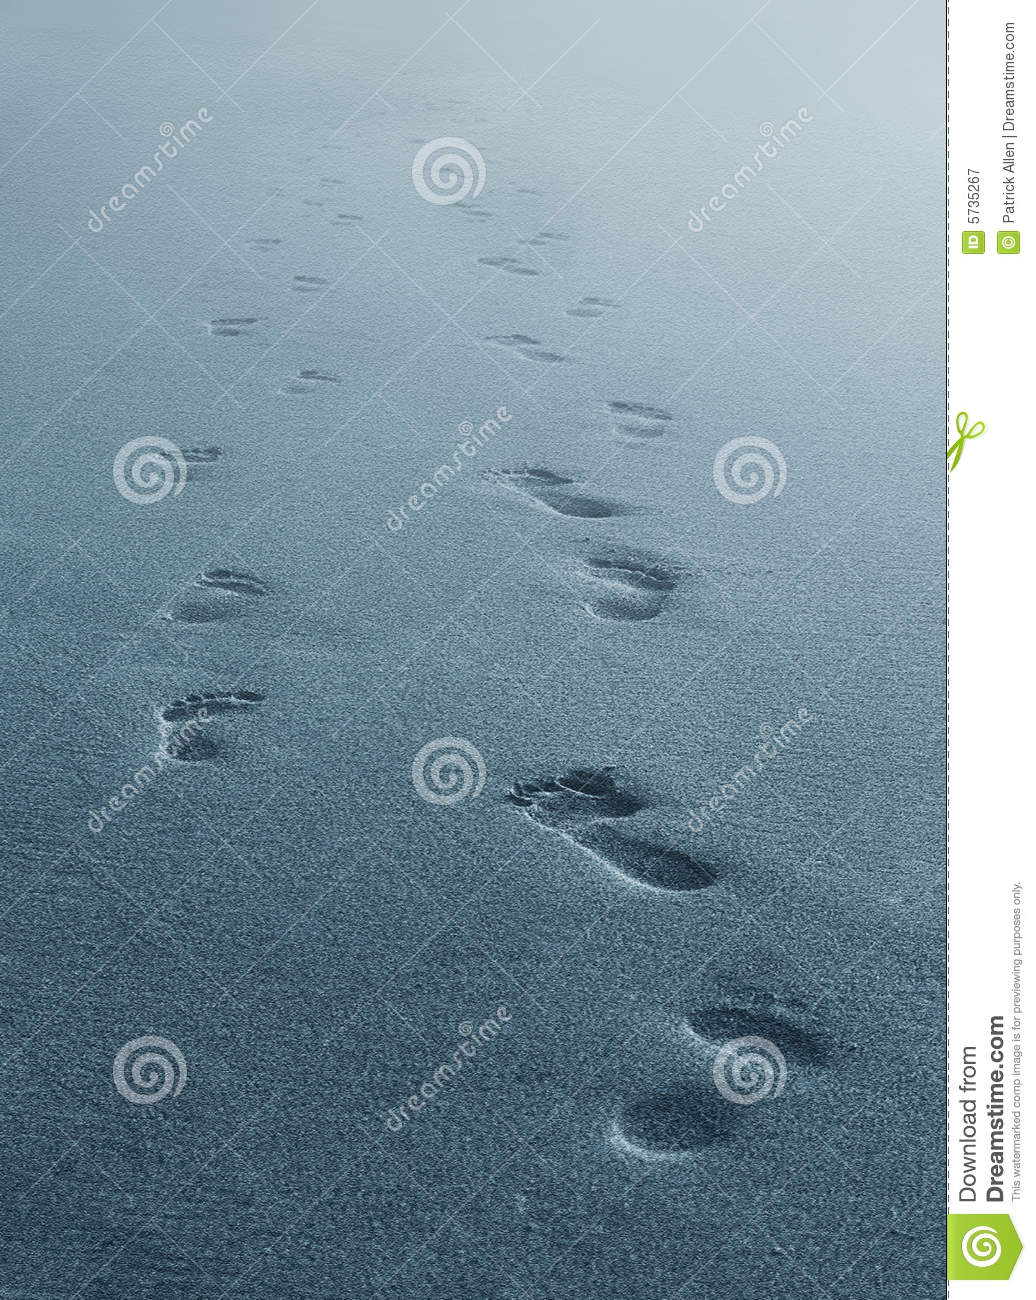 Fresh Footprints Fading